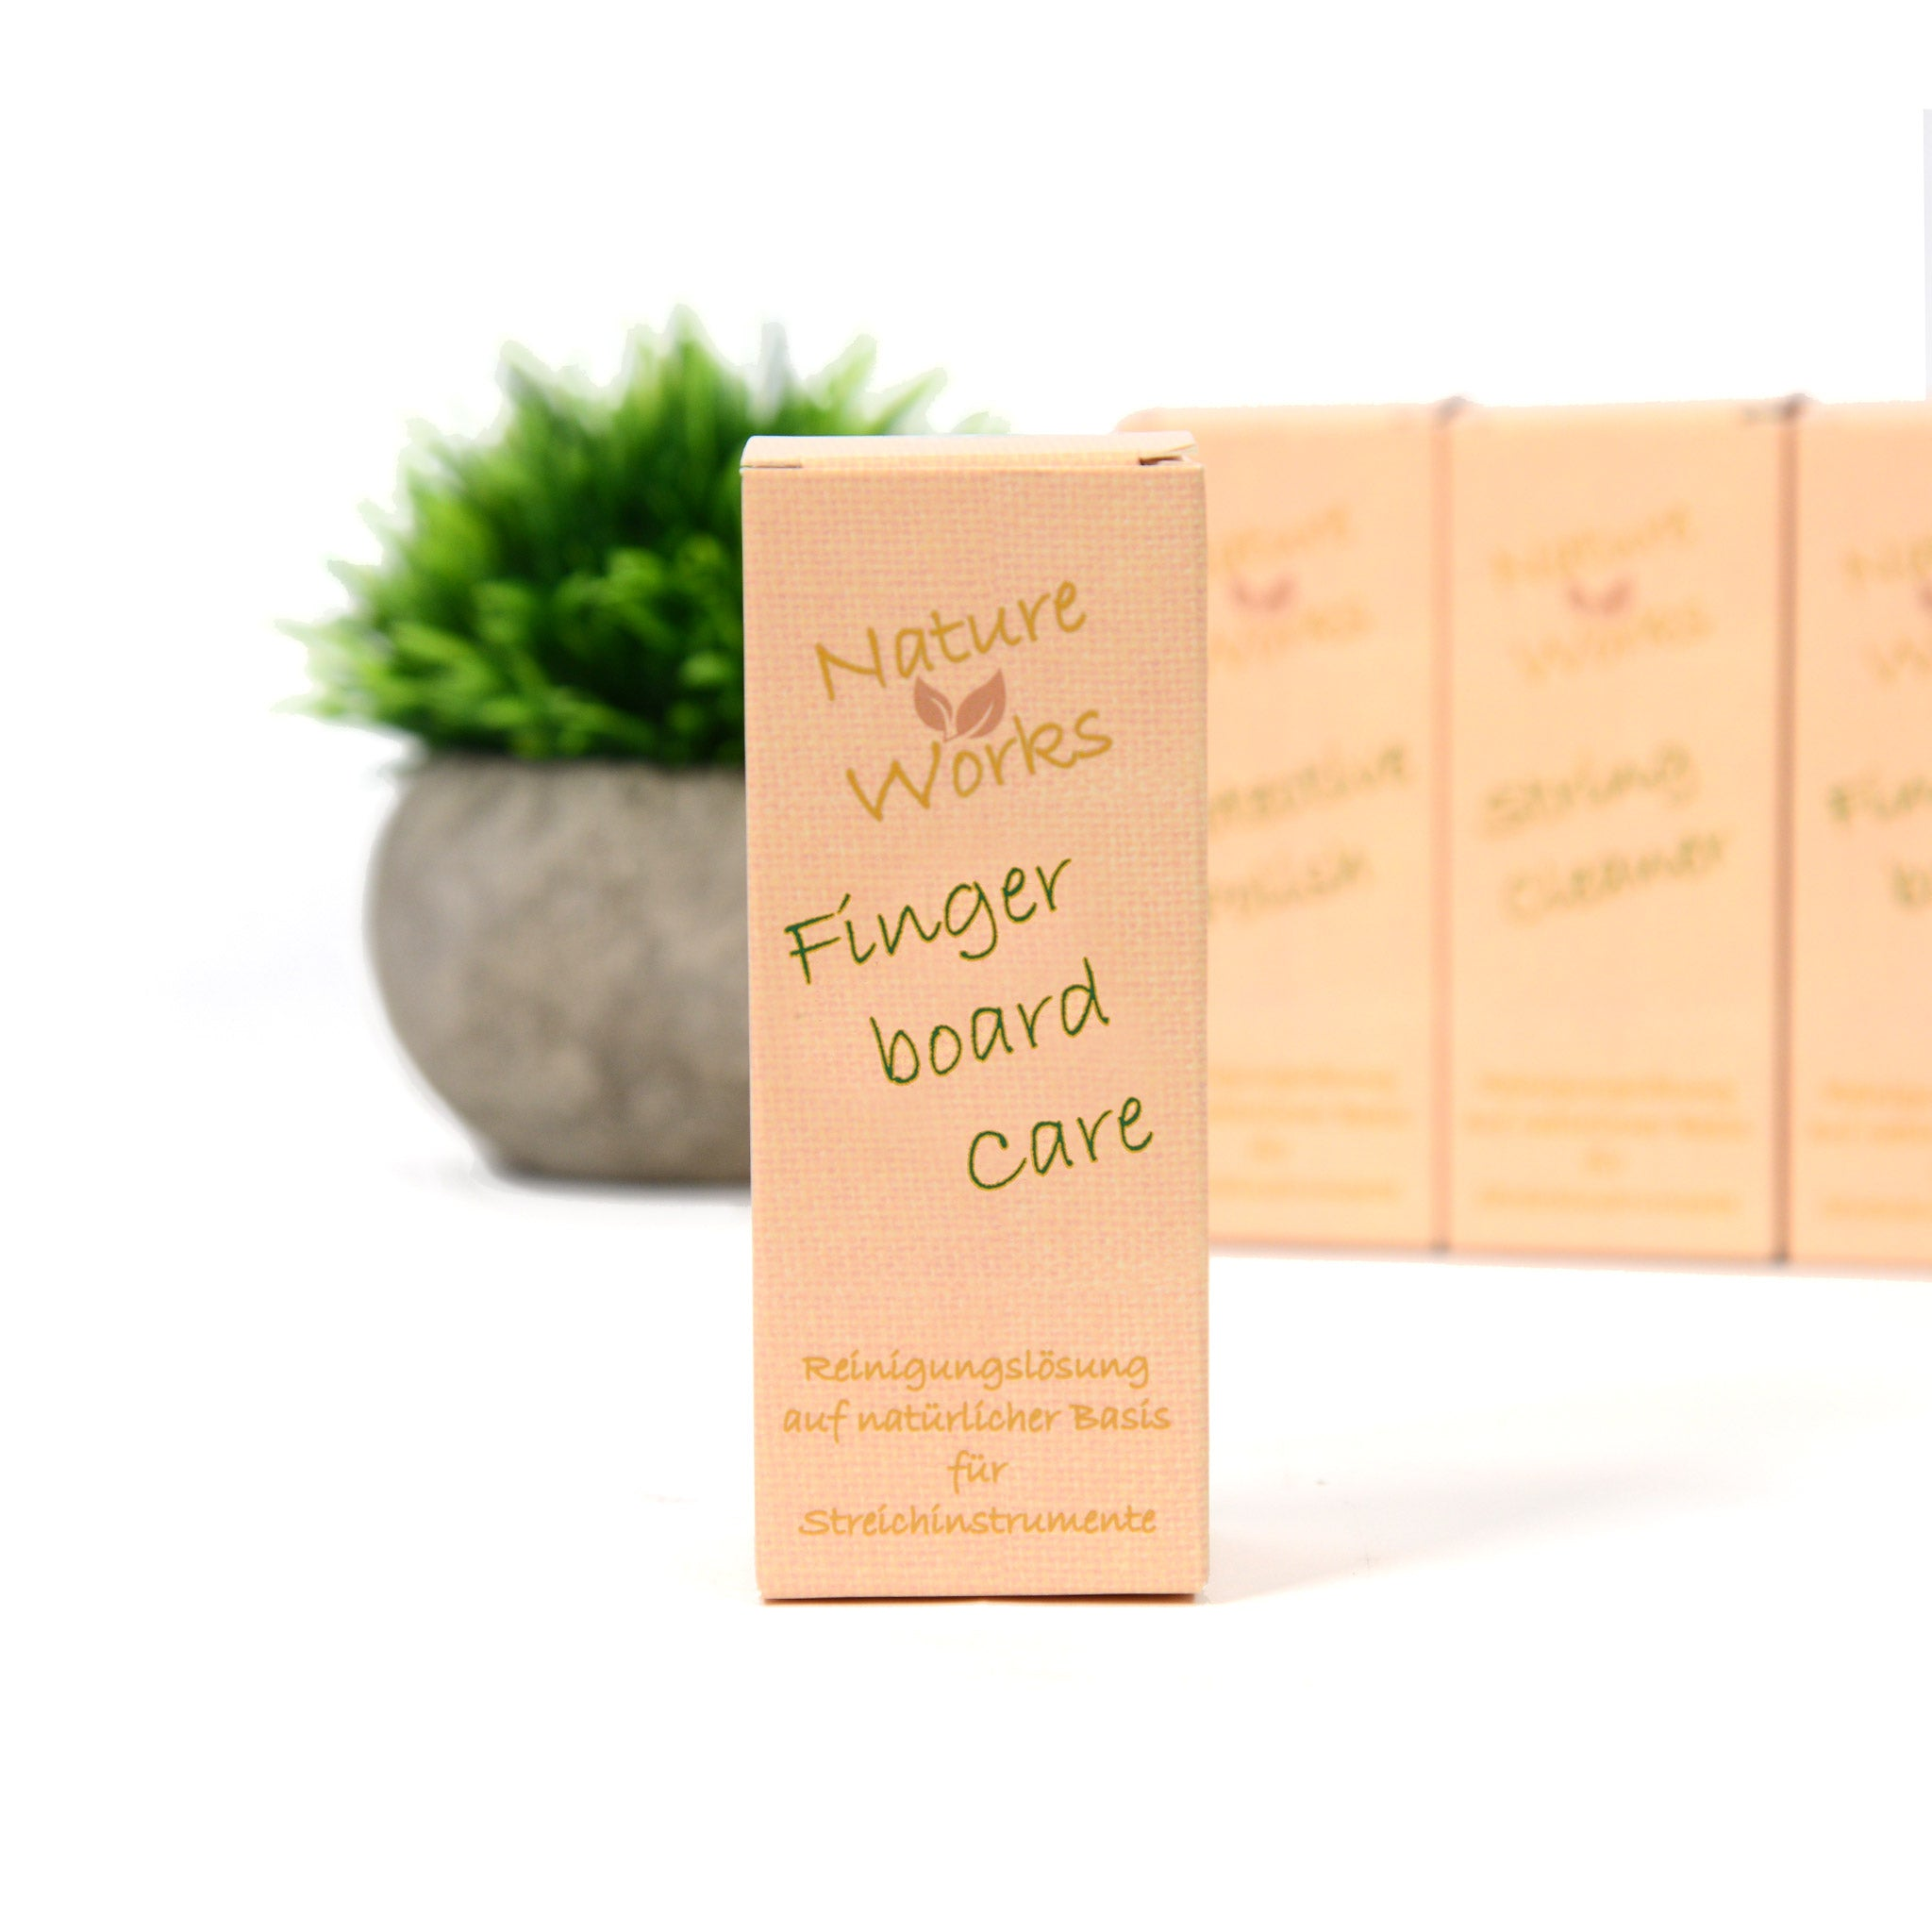 Nature Works Fingerboard Care